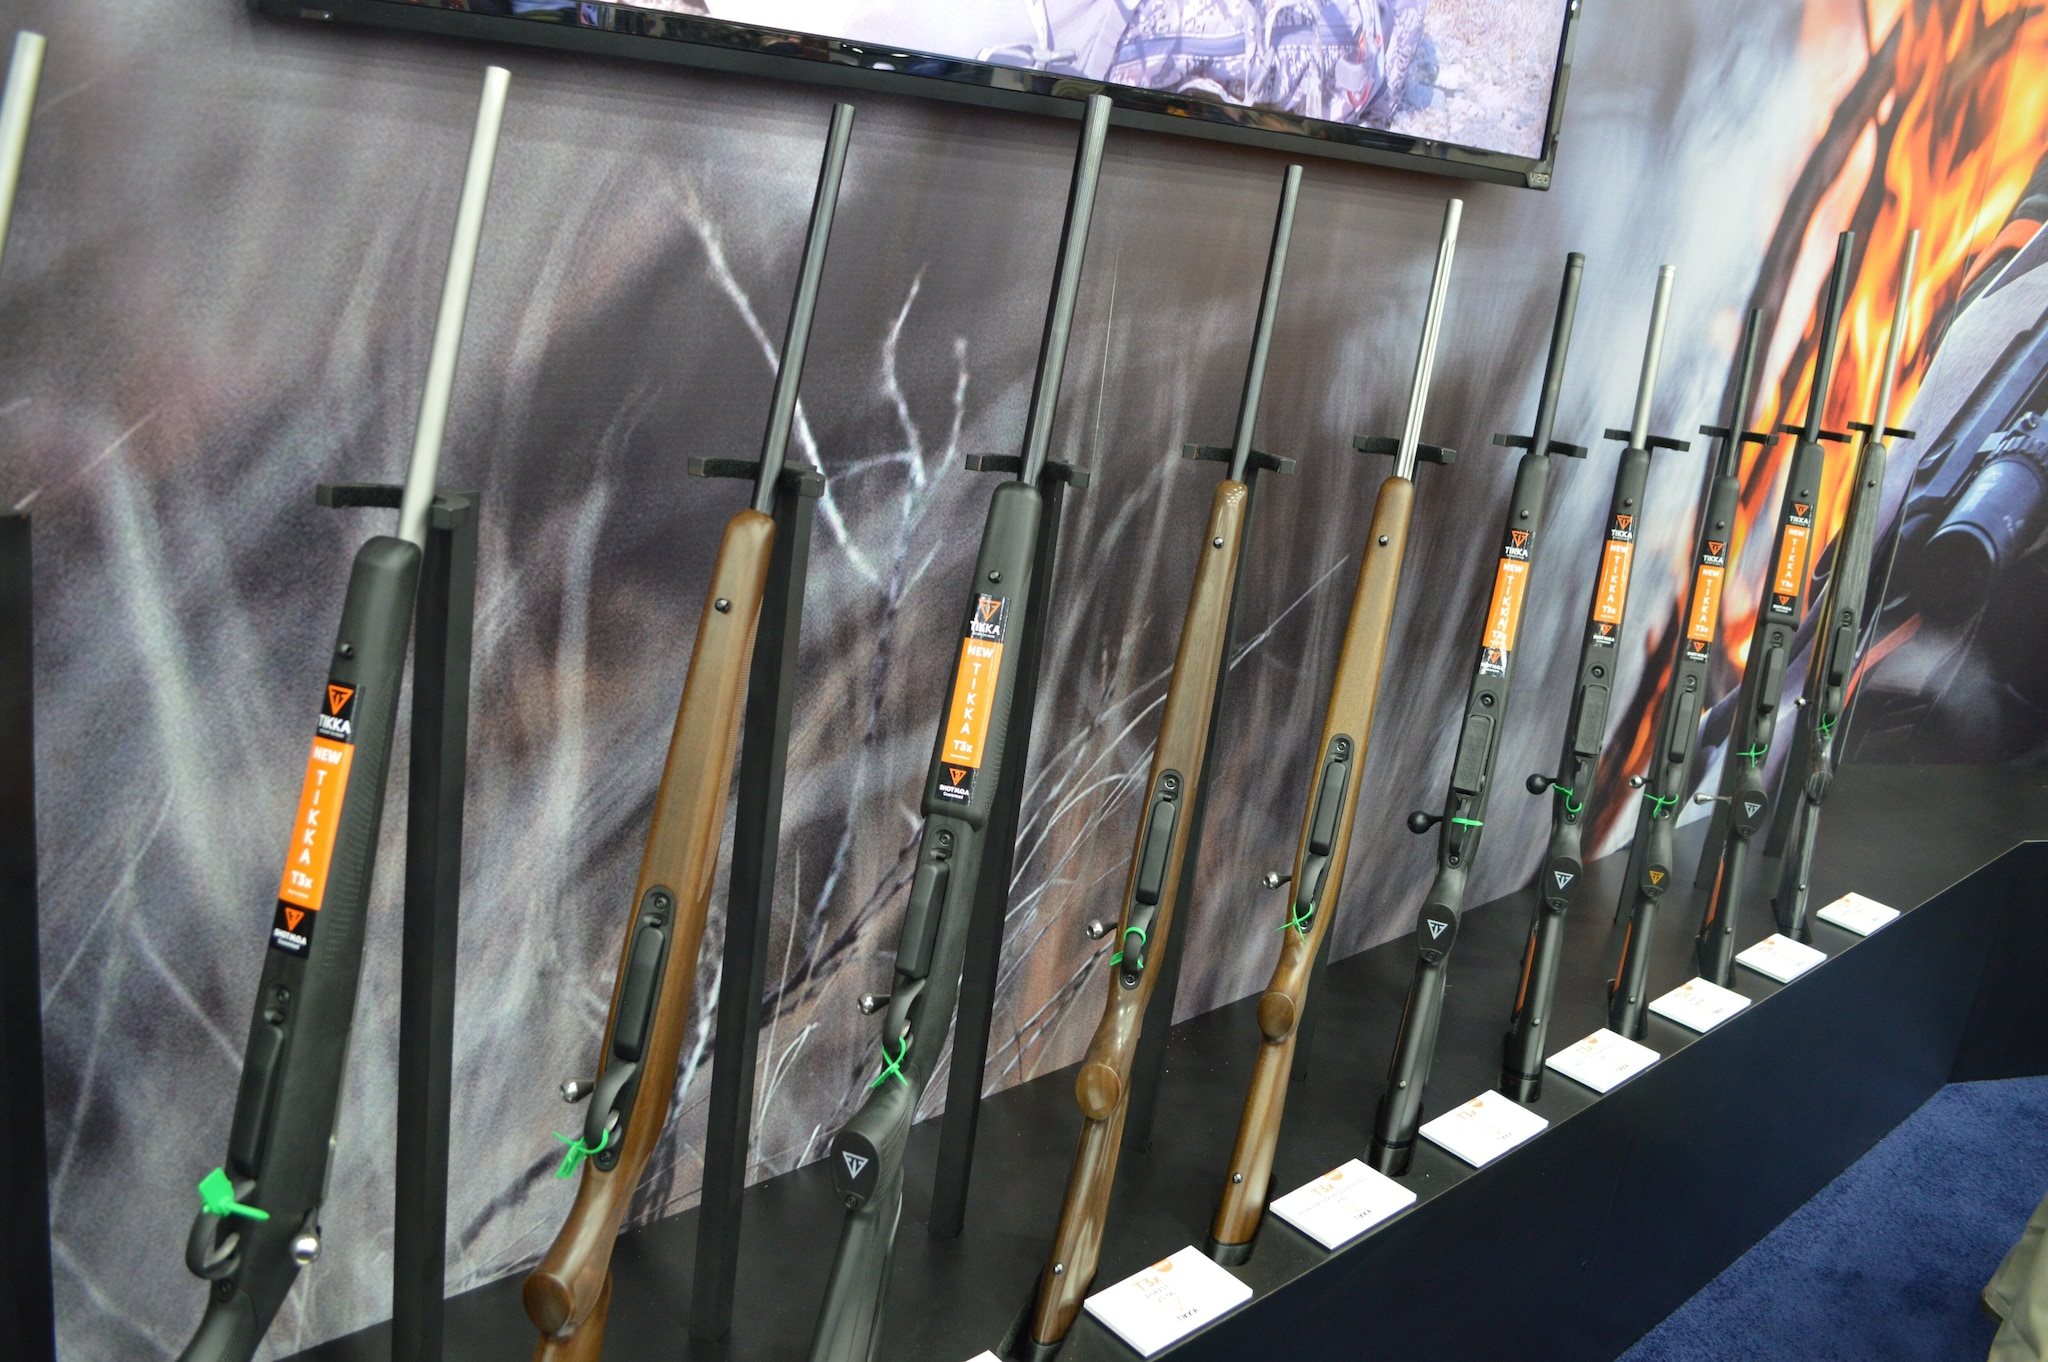 The T3x rifles will be available in at least 15 different chamberings across seven models.